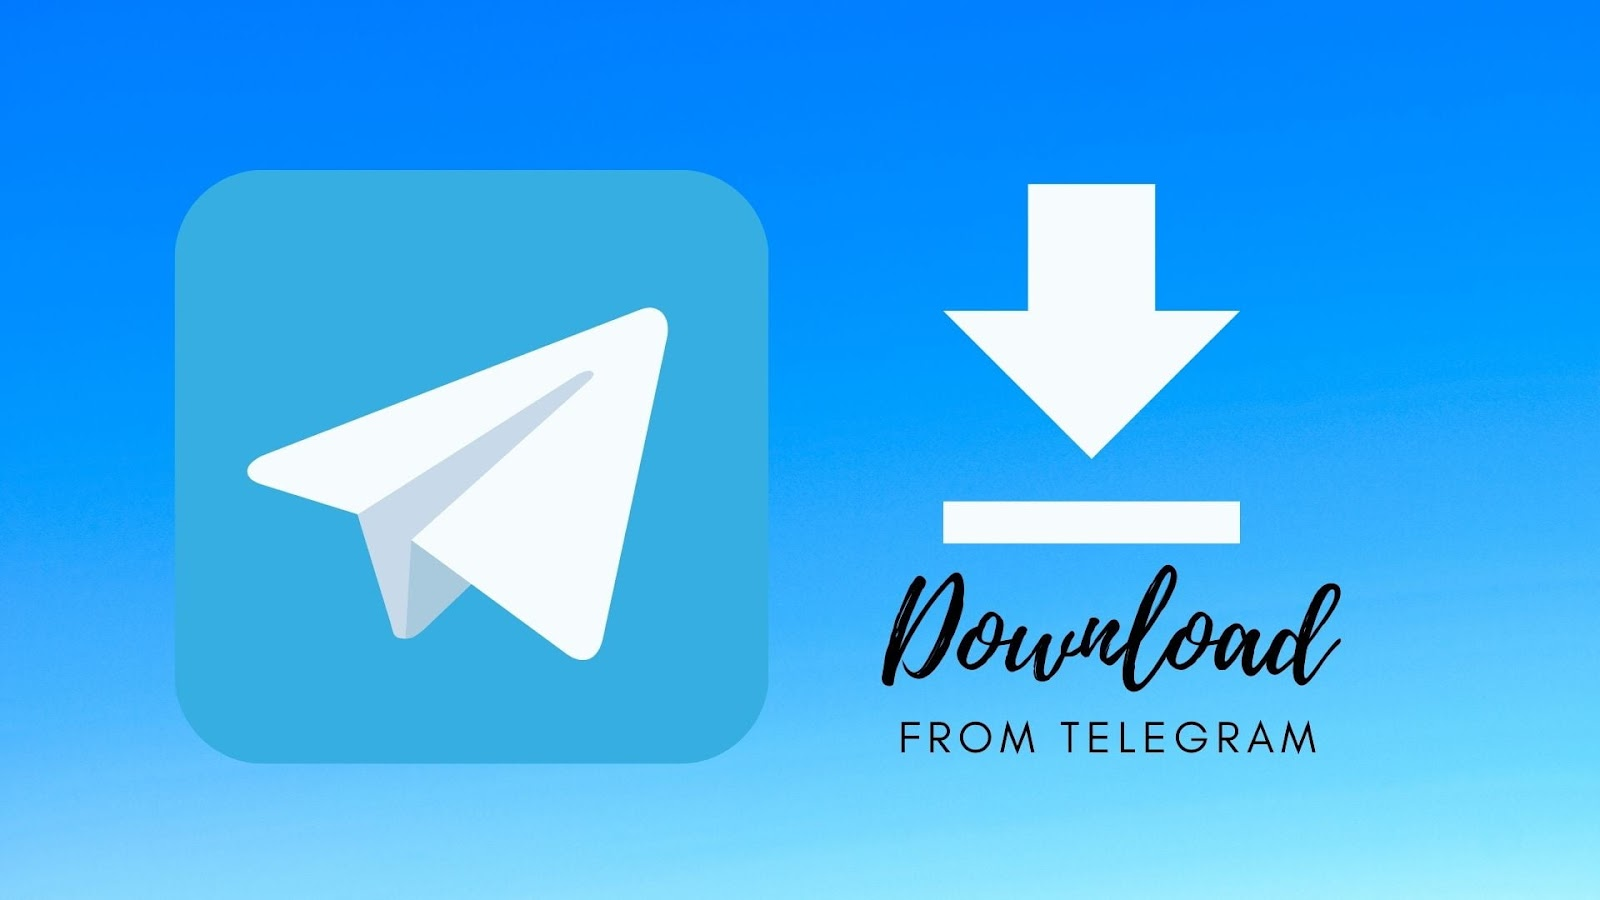 How To Download Telegram Files With Your Favorite Download Manager - Ctrenz